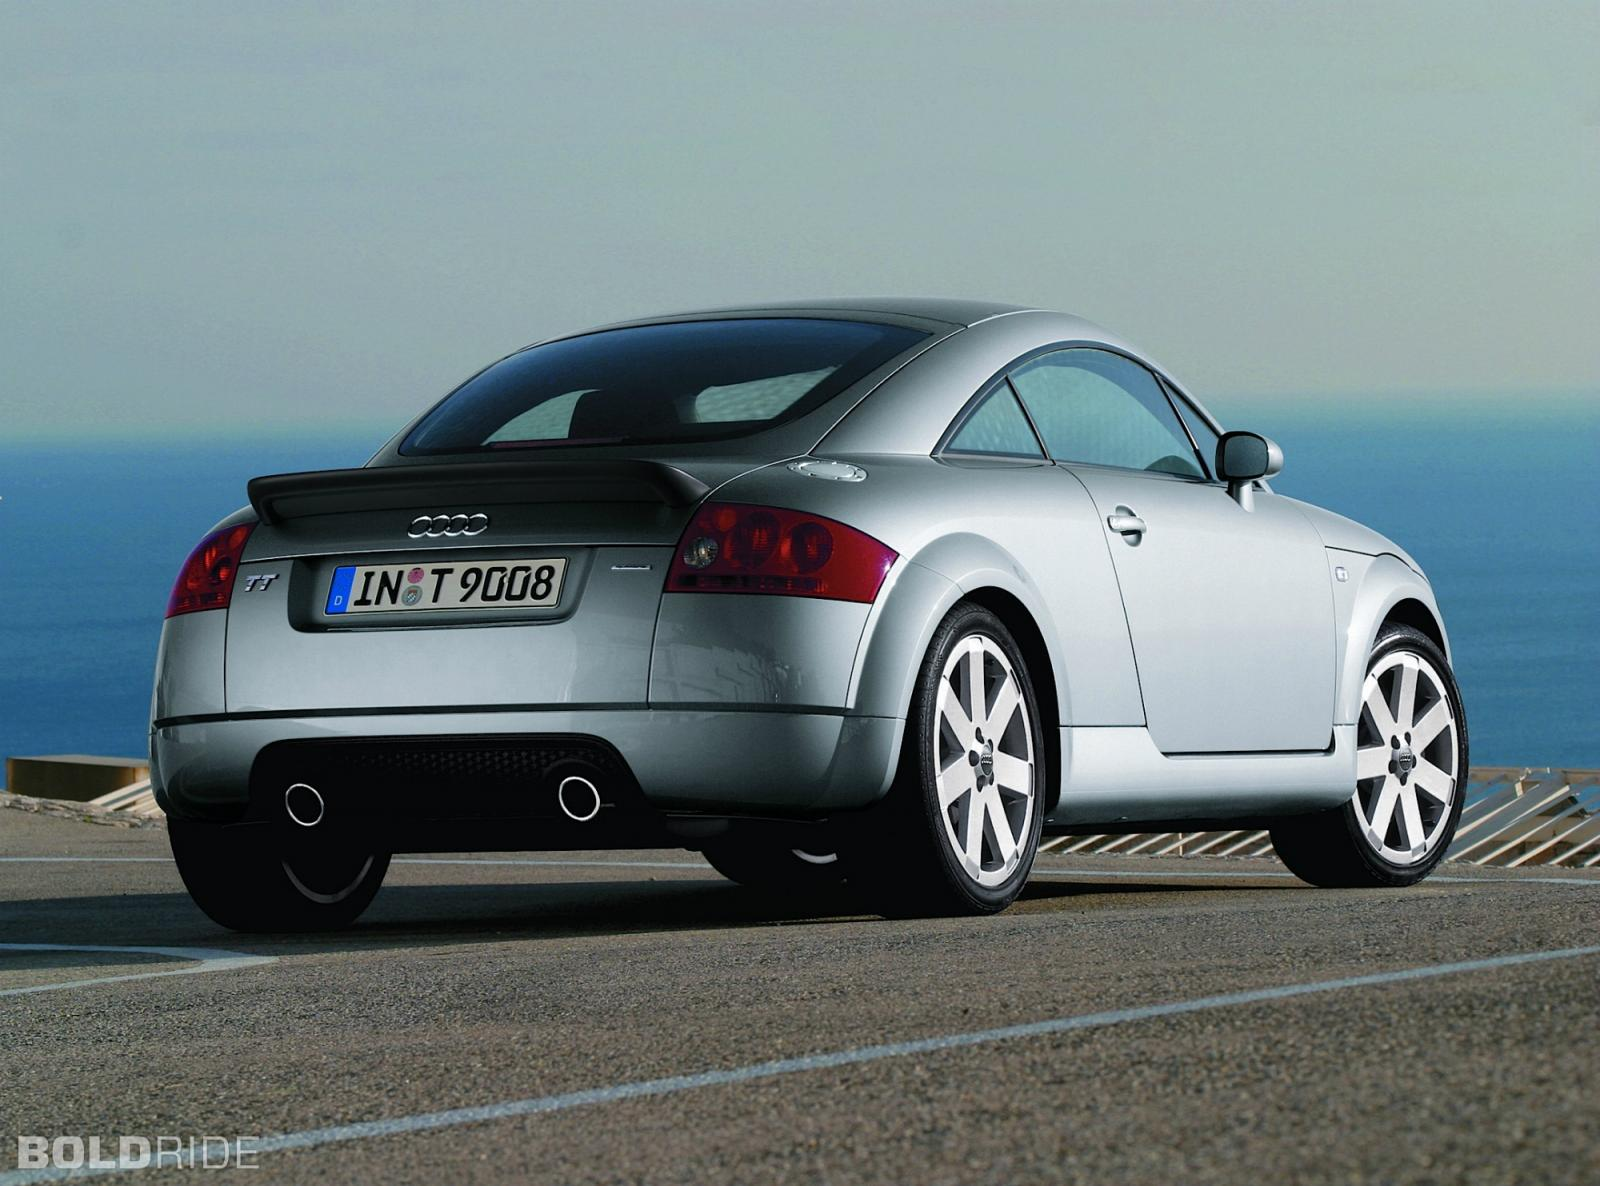 2003 audi tt information and photos zombiedrive. Black Bedroom Furniture Sets. Home Design Ideas